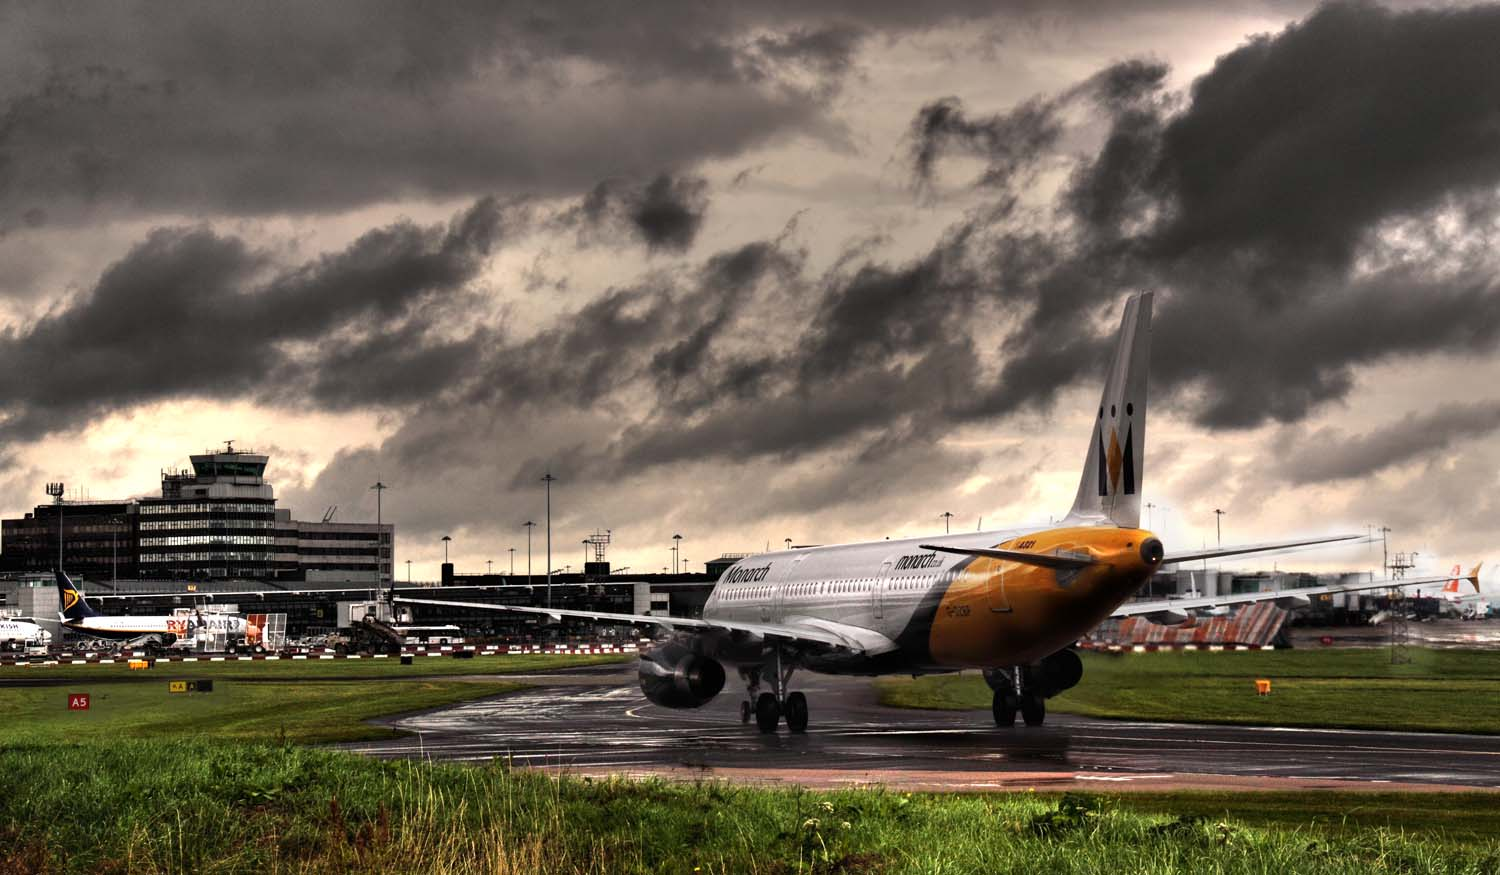 Manchester,MAN,Ringway,International,Airport,Monarch,Airways,jet,aircraft,grey,clouds,cloud,rain,rainy,day,runway,run,way,365-028,G-OZBP,Airbus,A321-231,CN1433,taxi-ing,taxi,365days,www.thewdcc.org.uk,thewdcc.org.uk,wdcc.org.uk,Warrington,society,District,Camera,club,photographic,photography,SLR,DSLR,group,GYCA,Bellhouse,bellhouse Club,HDR,high dynamic range,city,hotpix!